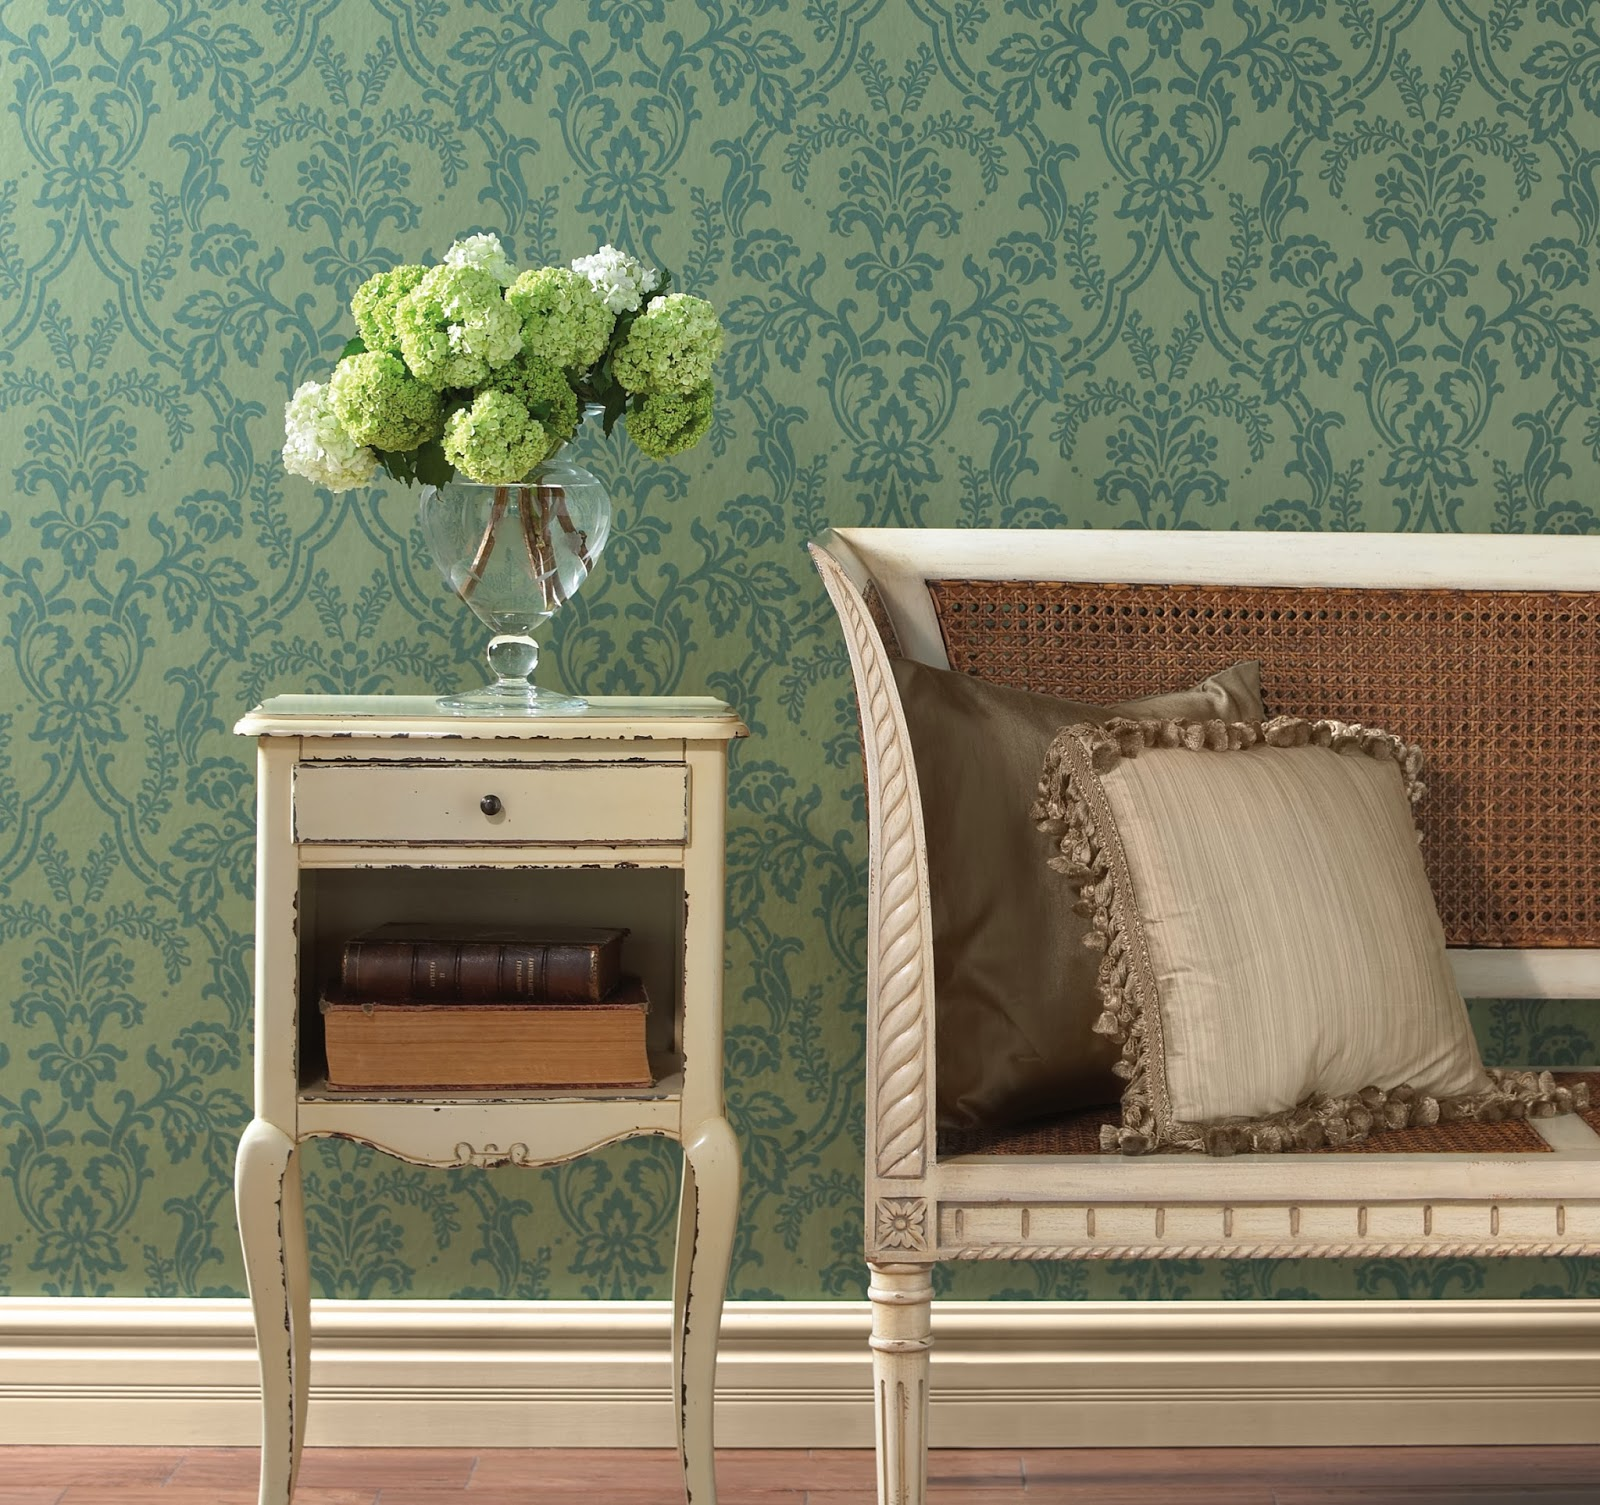 https://www.wallcoveringsforless.com/shoppingcart/prodlist1.cfm?page=_searchManufacturer.cfm&search=CCP1211&Submit.x=0&Submit.y=0